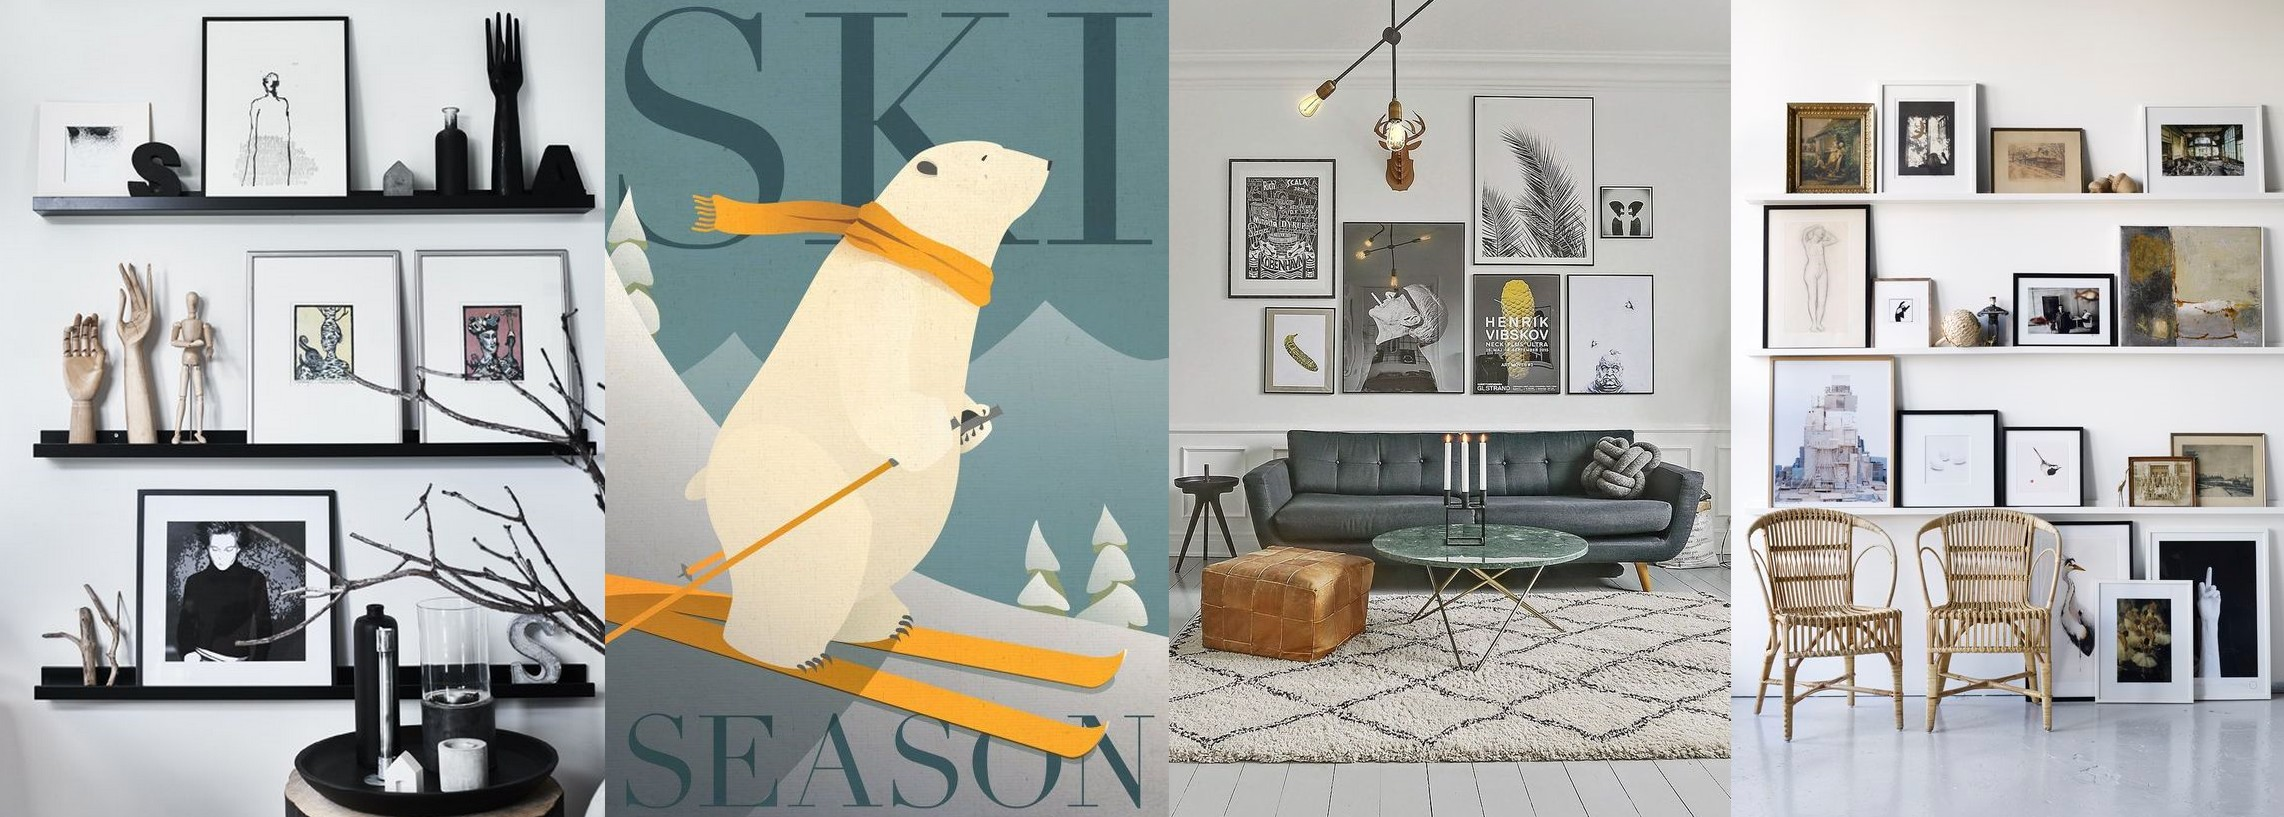 Changer affiches (hiver)